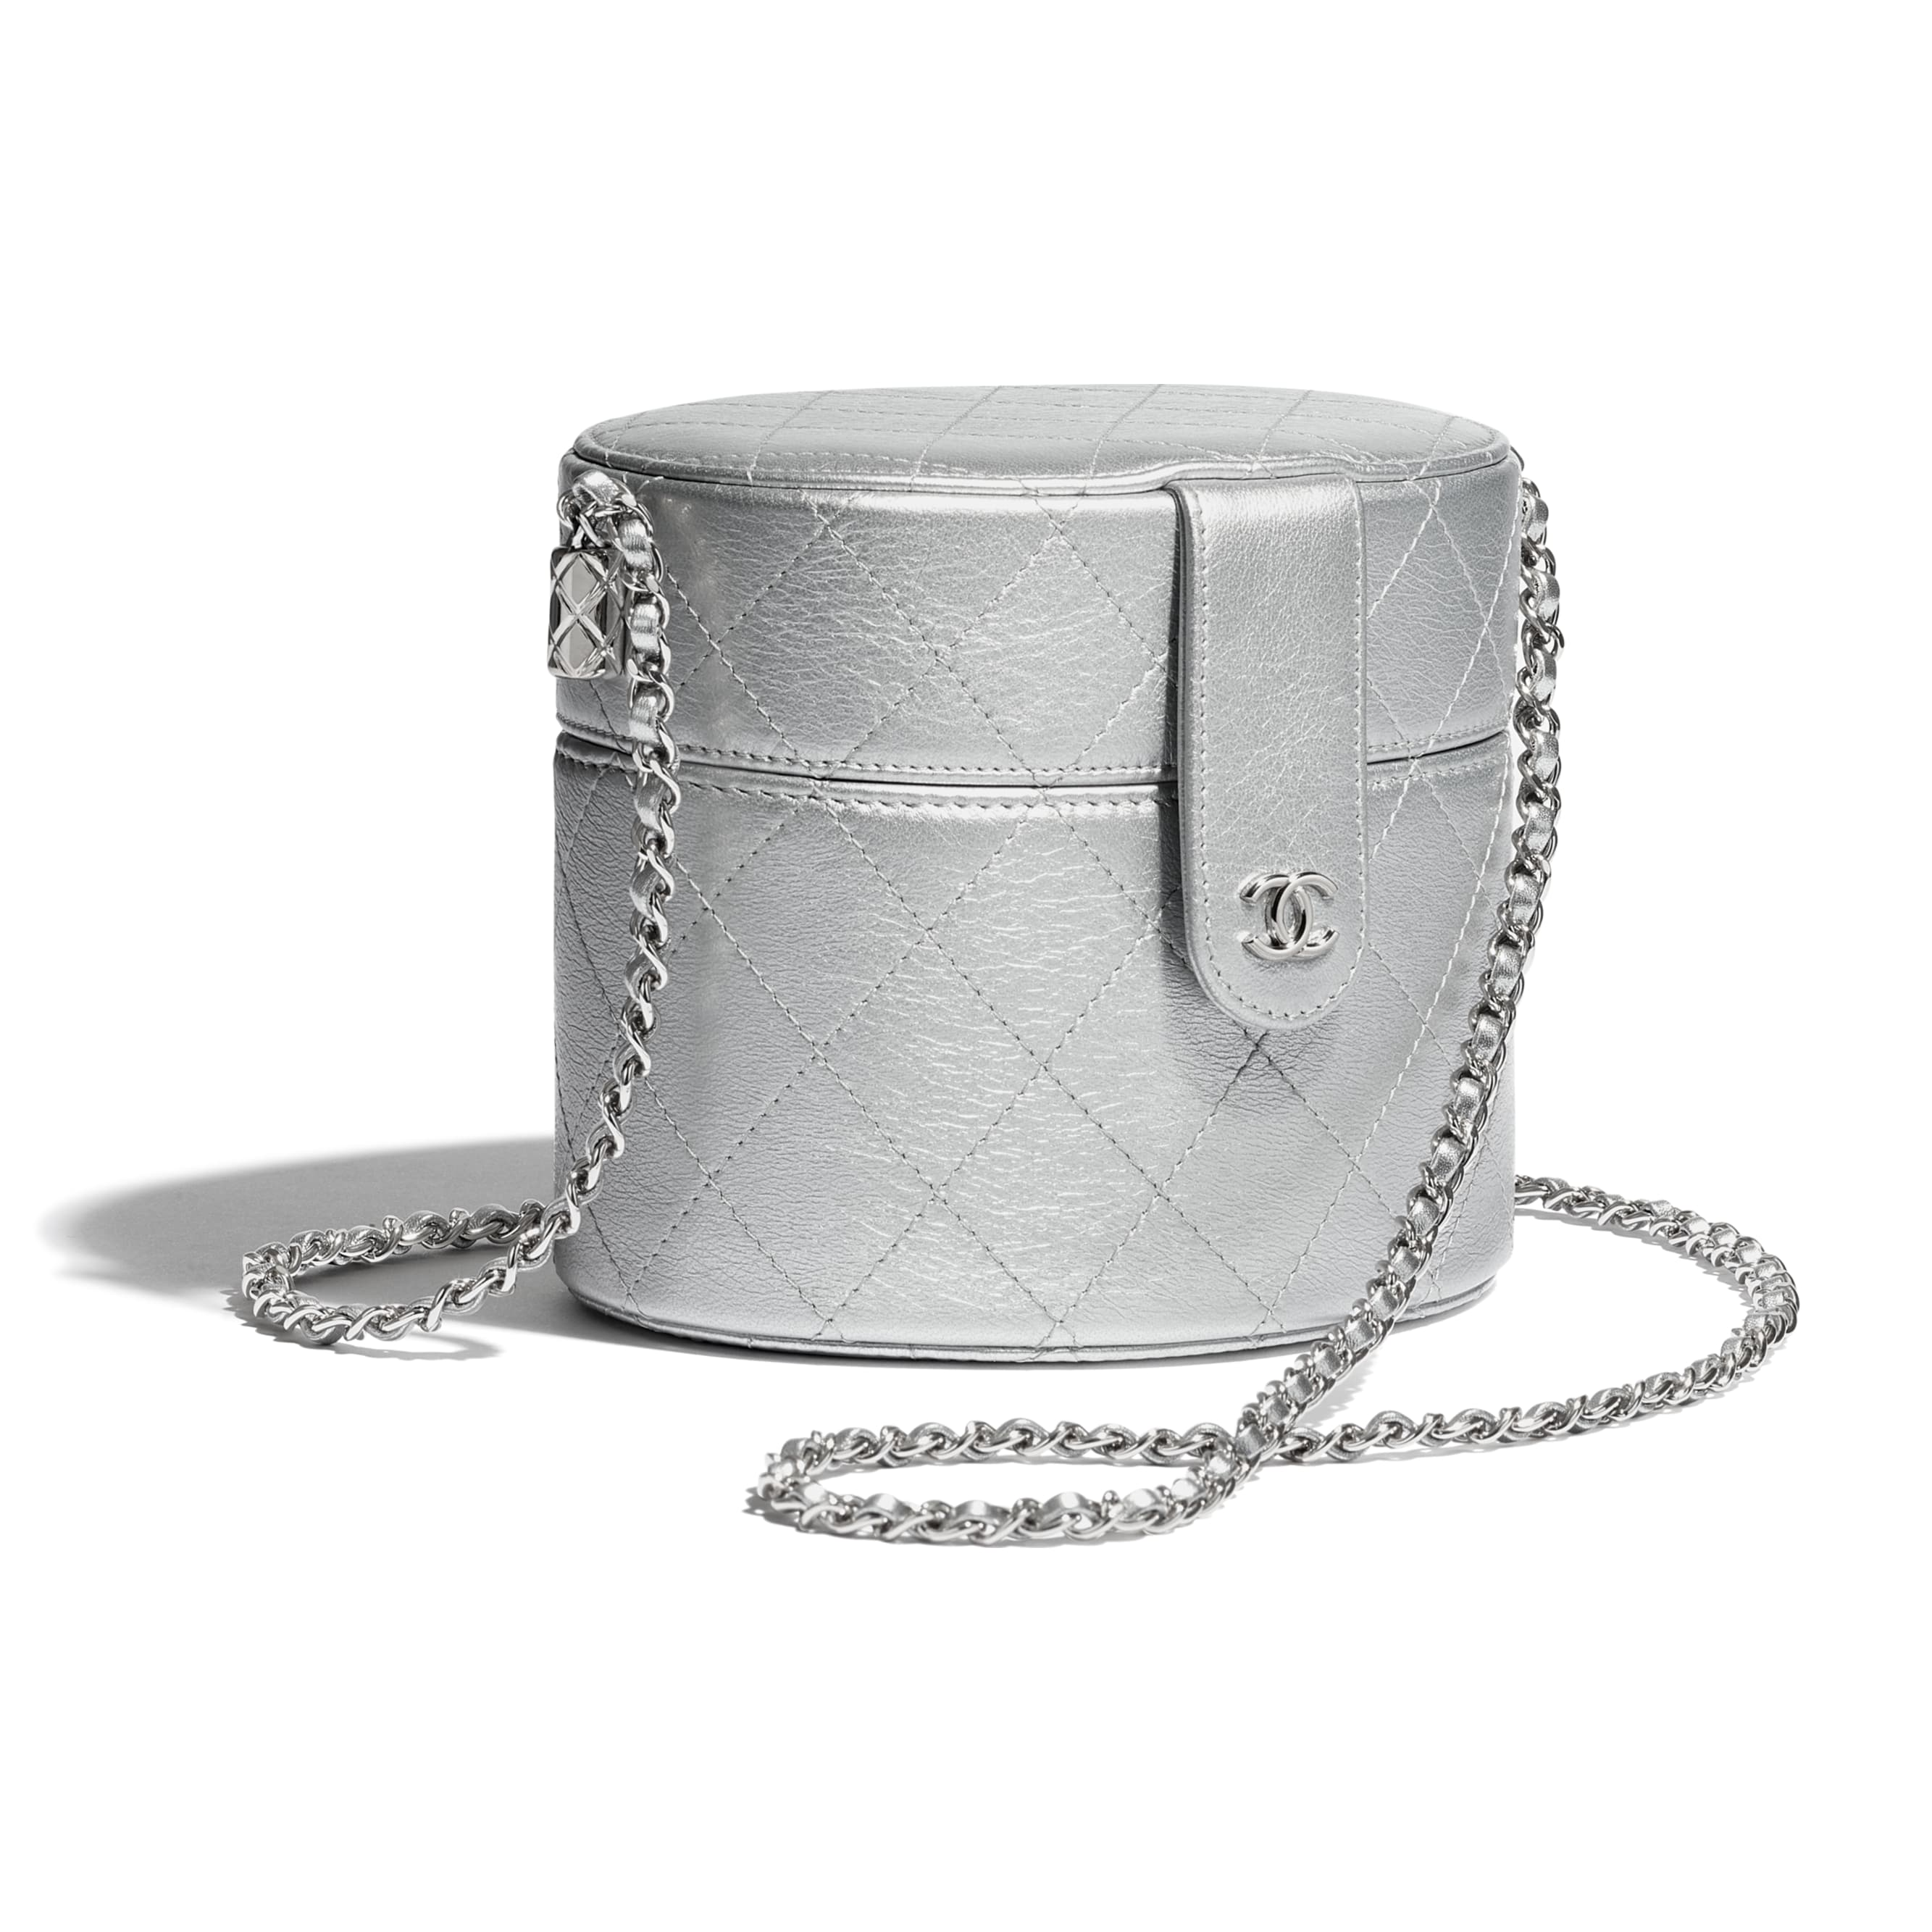 Clutch with Chain - Silver - Metallic Lambskin & Silver-Tone Metal - CHANEL - Extra view - see standard sized version